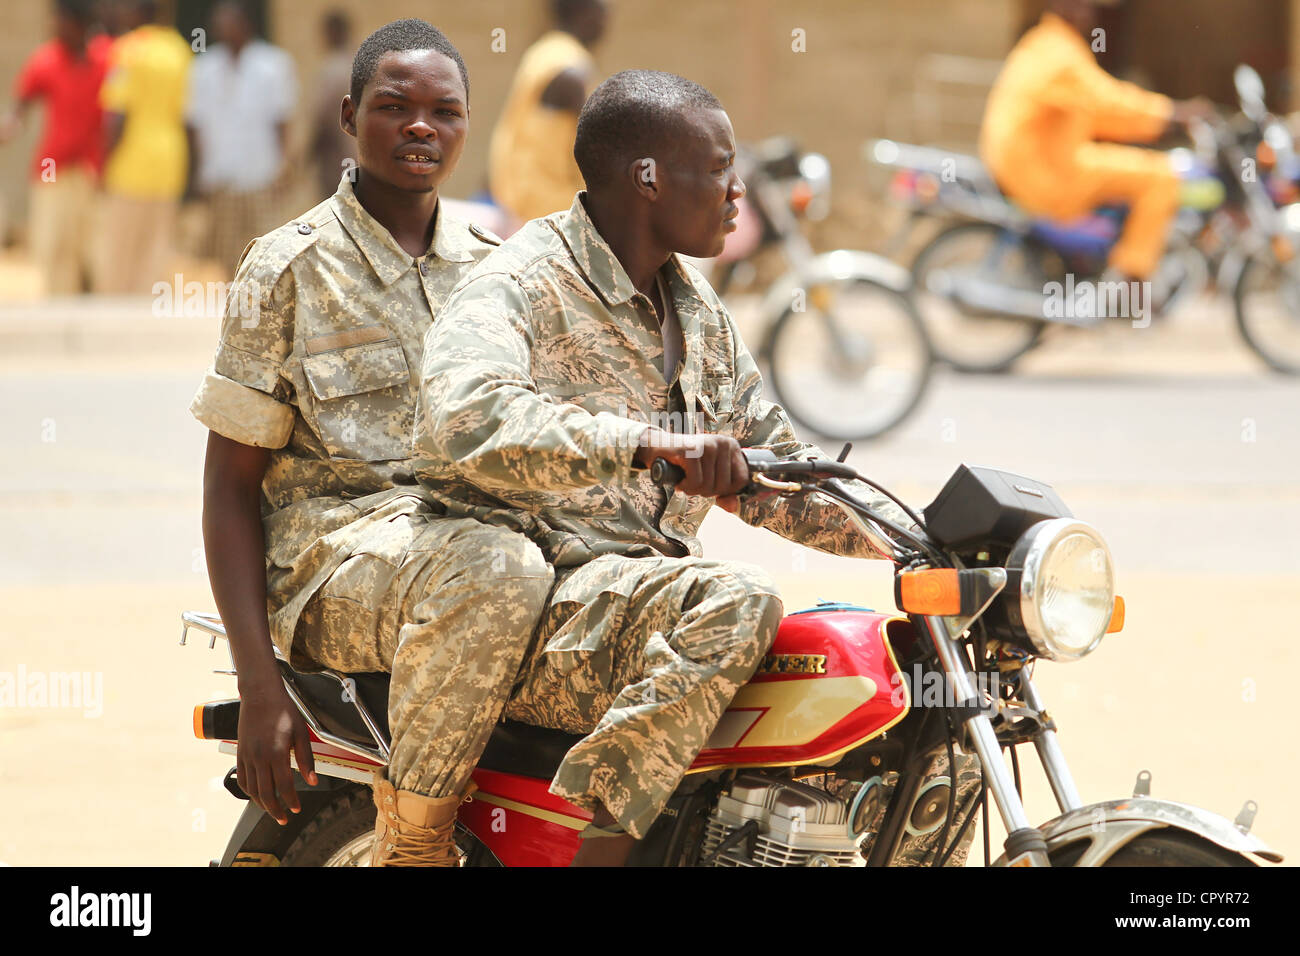 Two soldiers ride a motorcycle in N'Djamena, Chad on Tuesday June 8, 2010. - Stock Image